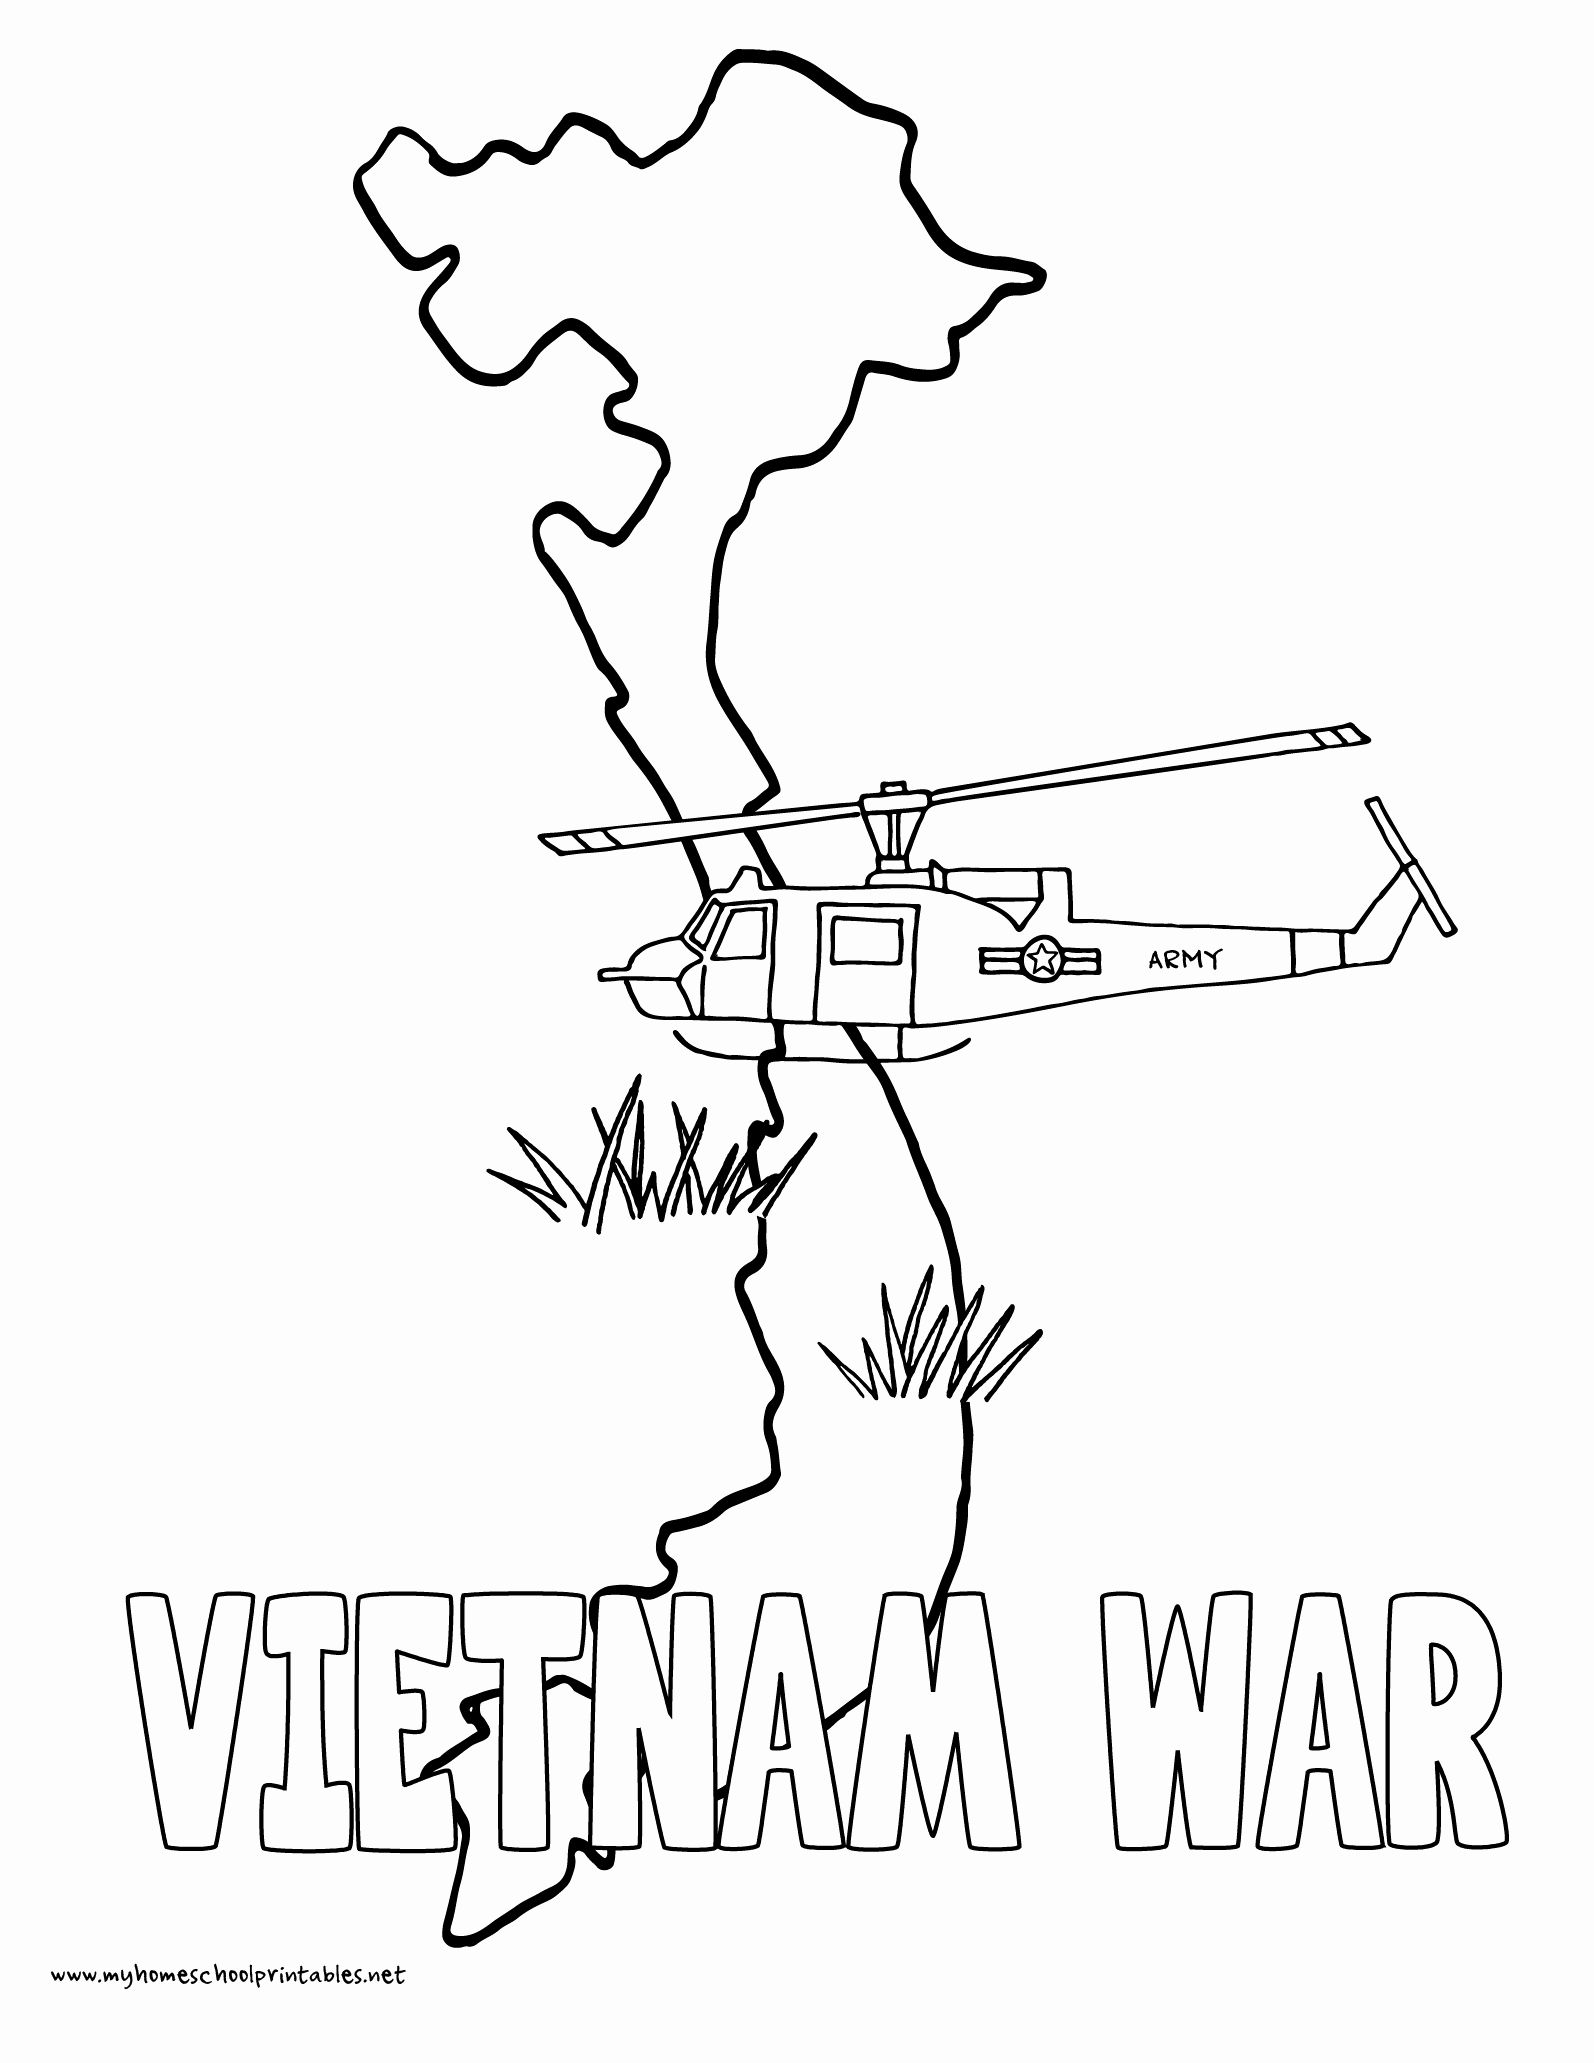 War Horse Coloring Pages Luxury War Coloring Pages At Getdrawings